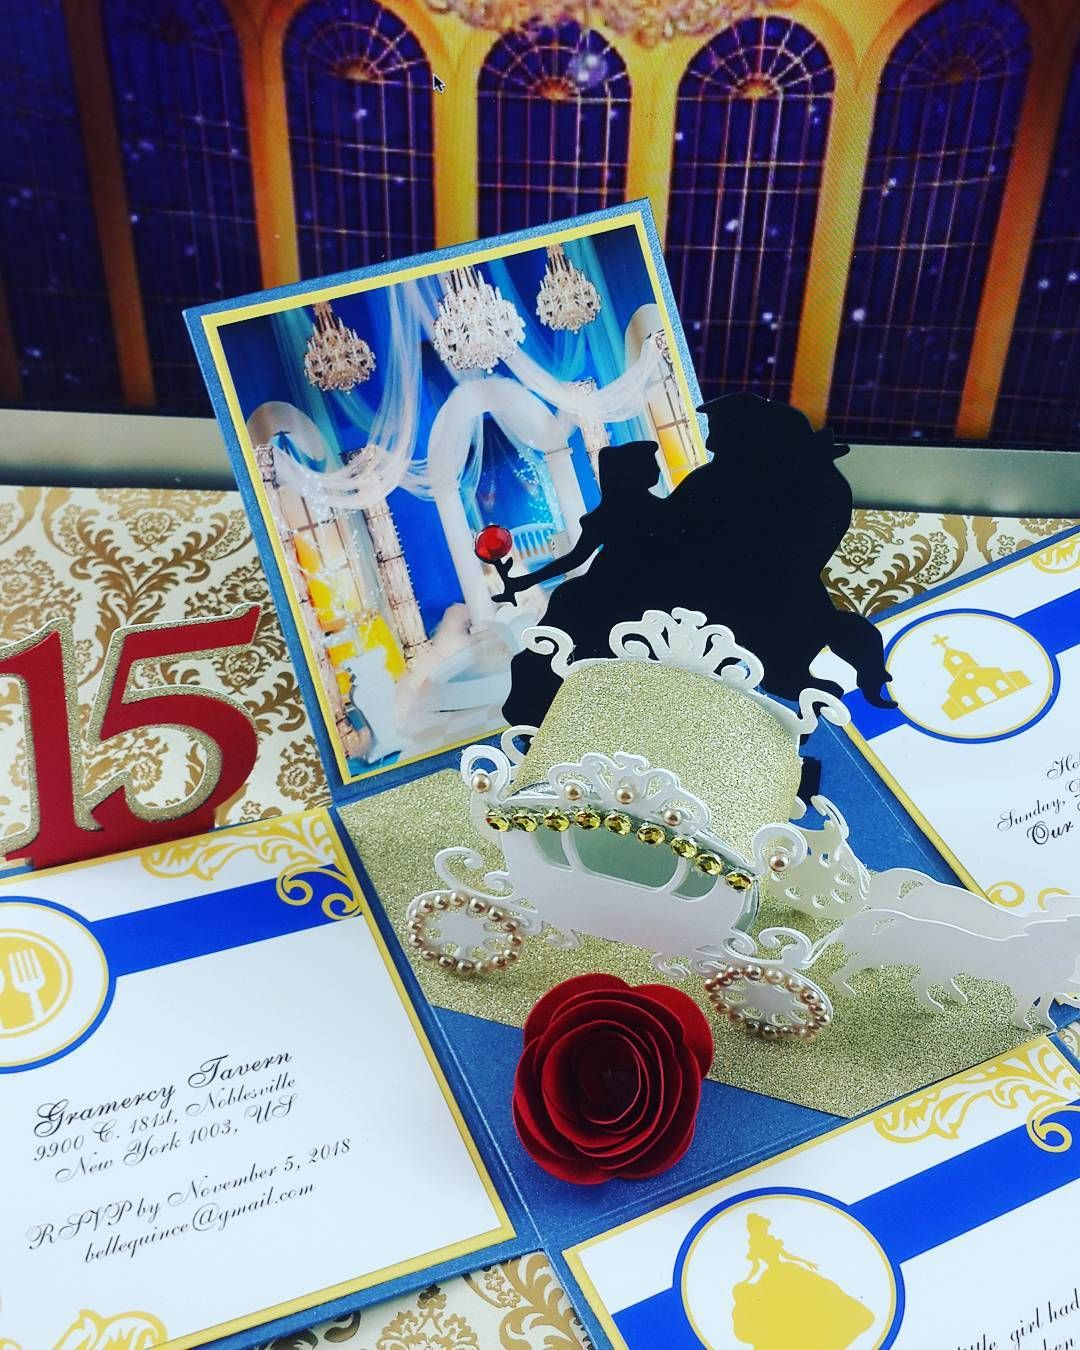 Beauty And The Beast Unique Couple Tattoos: Cinderella Themed Invitations, Beauty And The Beast Theme